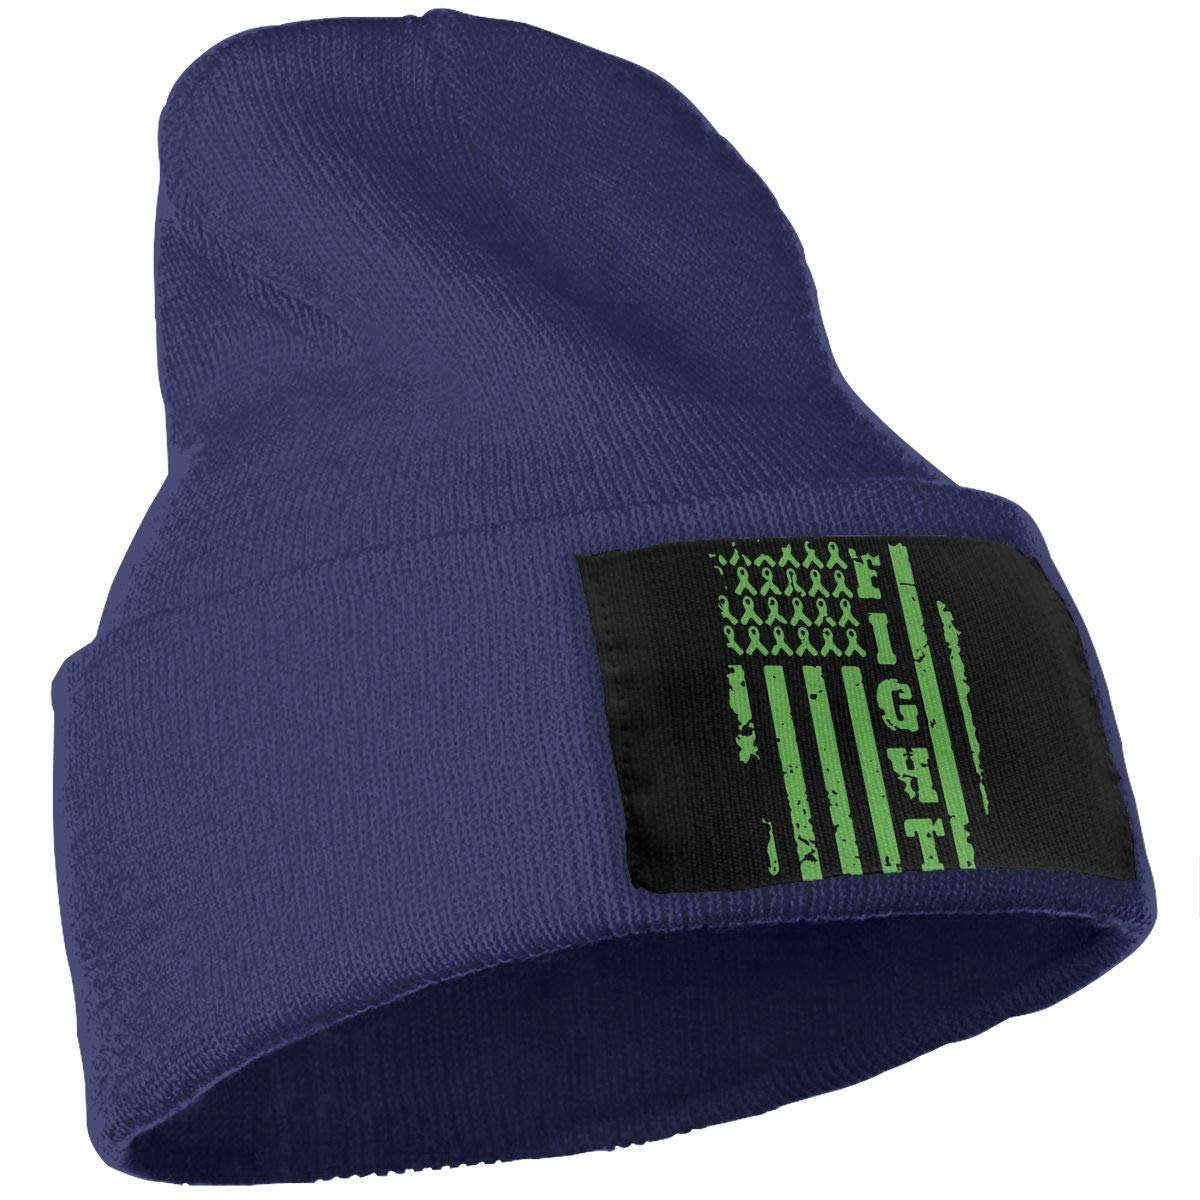 Bile Duct Cancer Awareness Men Women Knit Hats Stretchy /& Soft Beanie Cap Hat Beanie